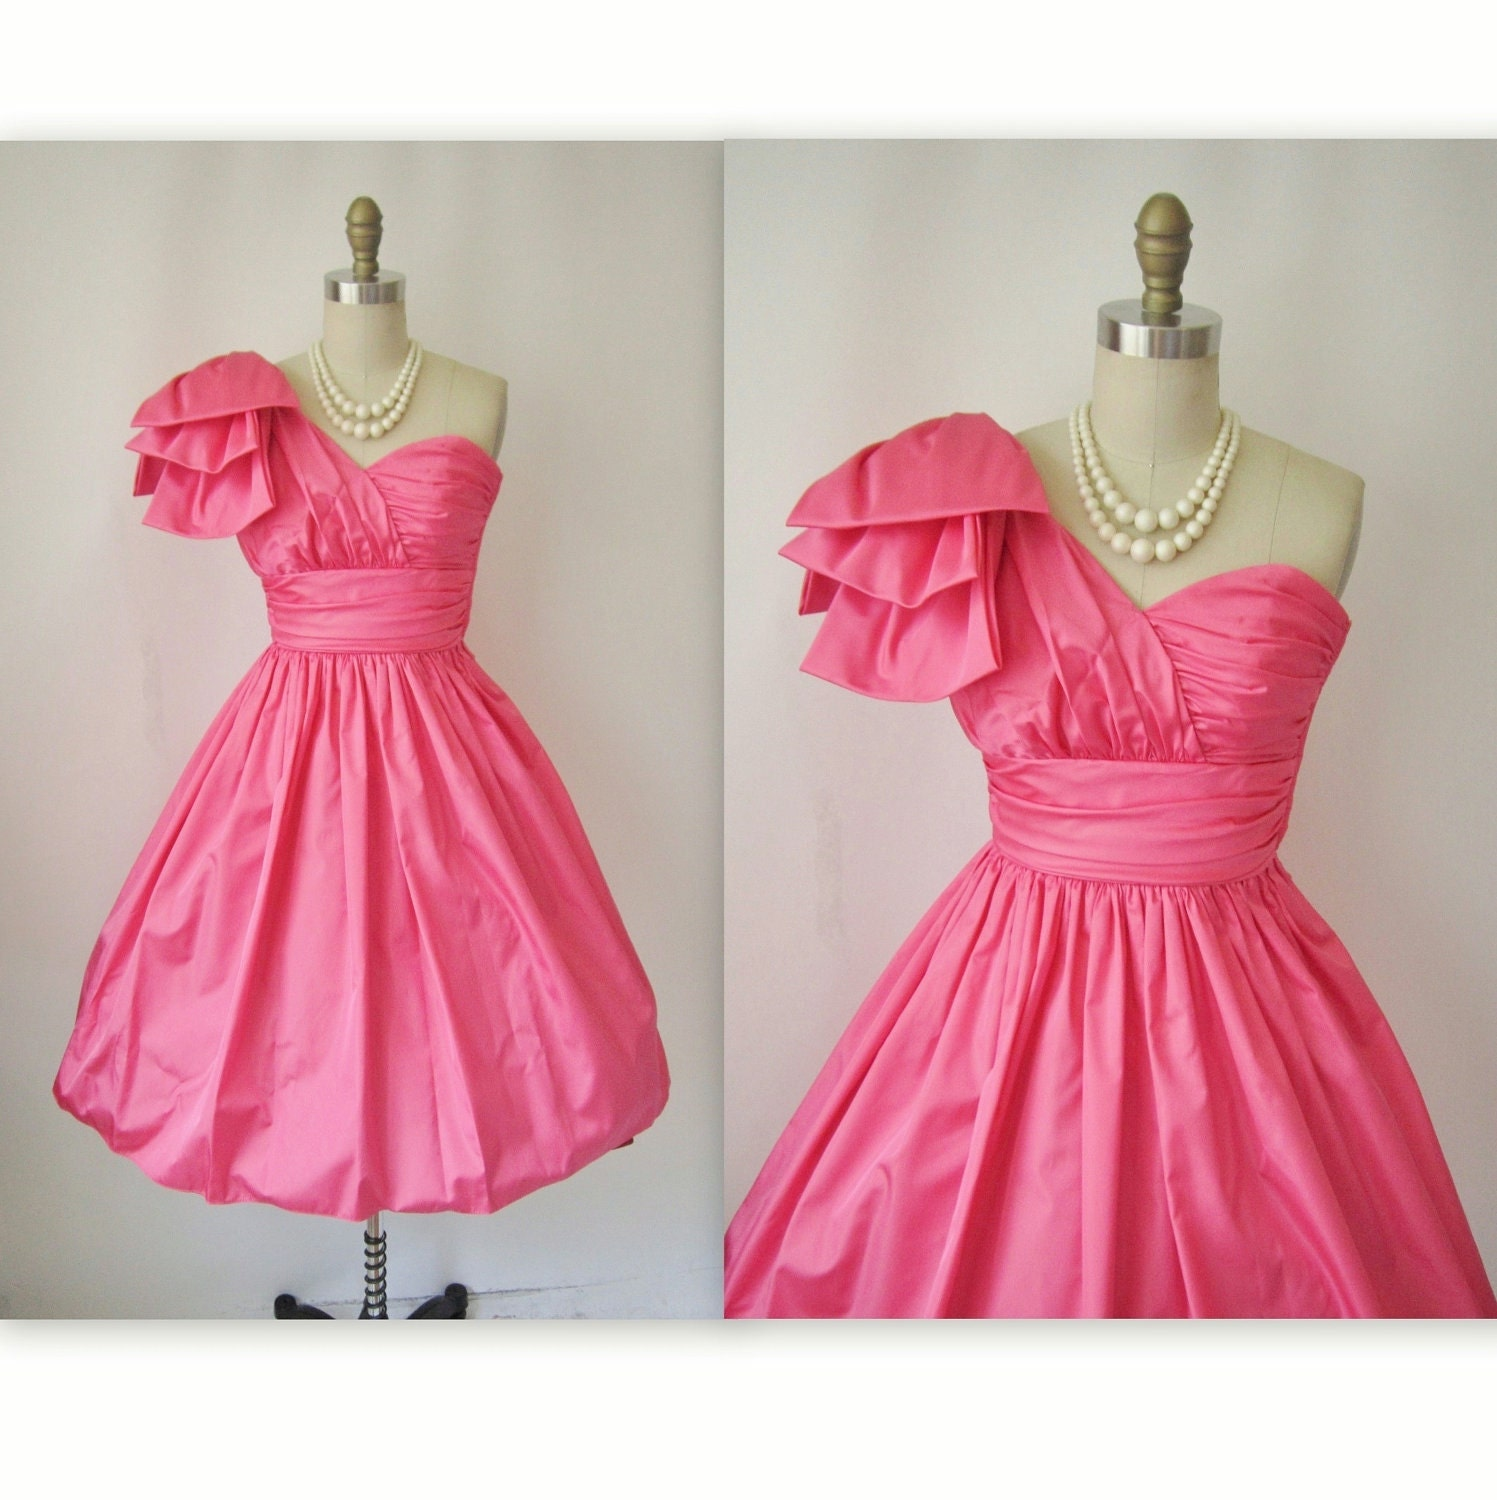 Vintage Wedding Dresses 80s: Vintage Prom Dress // 1980's One Shoulder Hot Pink Taffeta